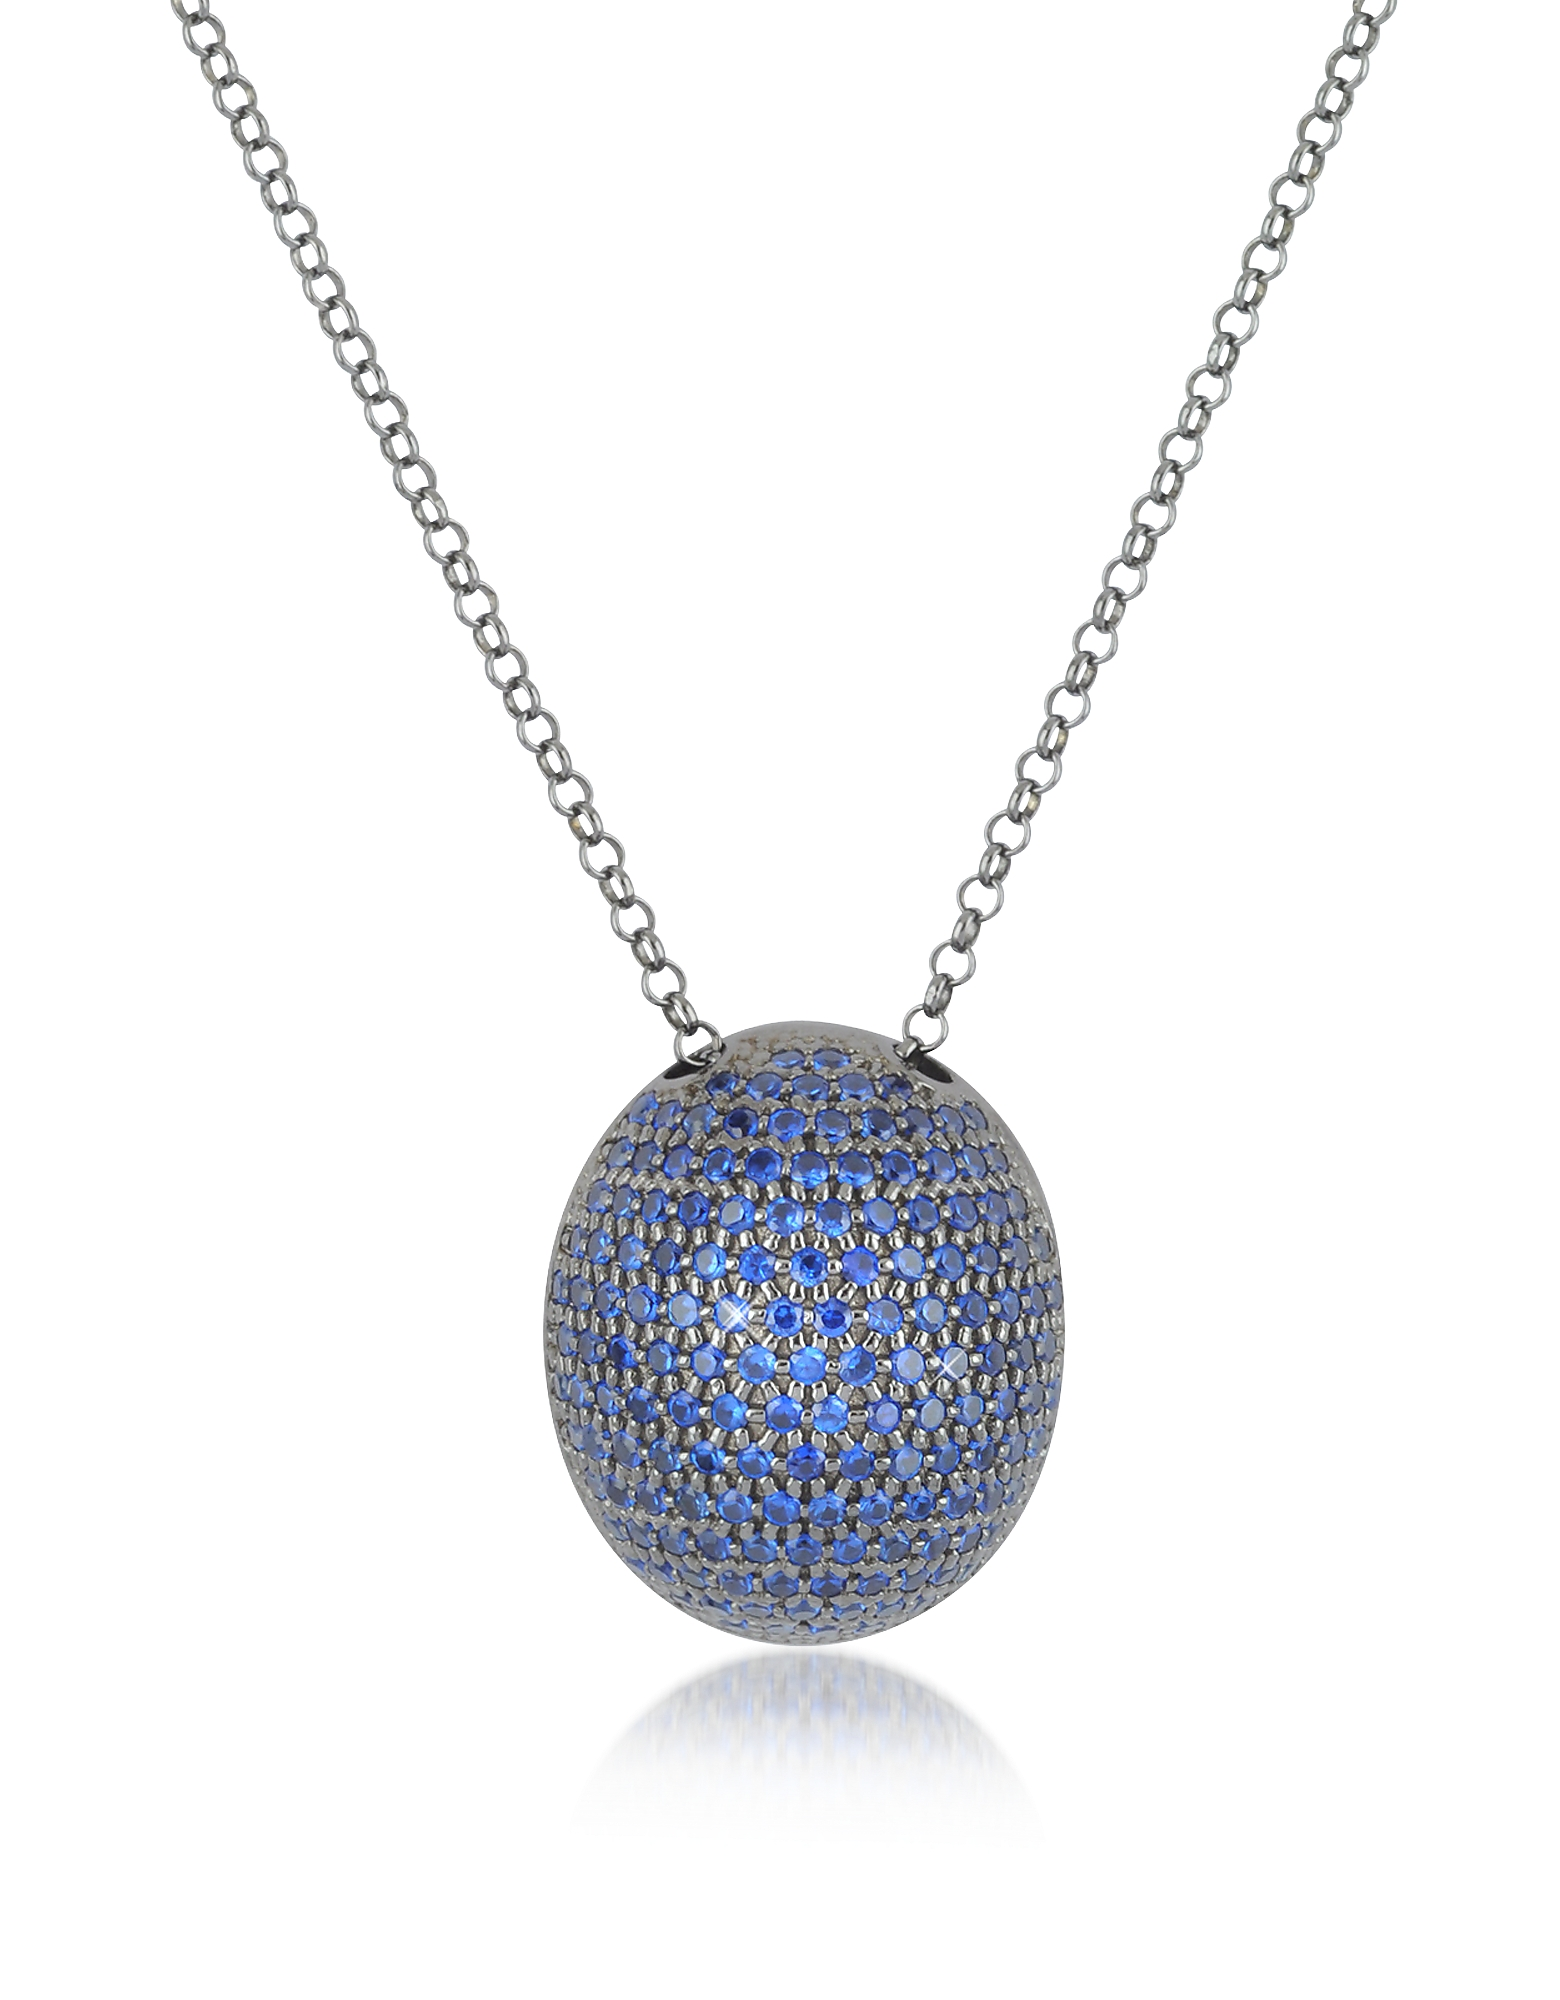 Azhar Necklaces, Blue Cubic Zirconia Sterling Silver Pendant Necklace